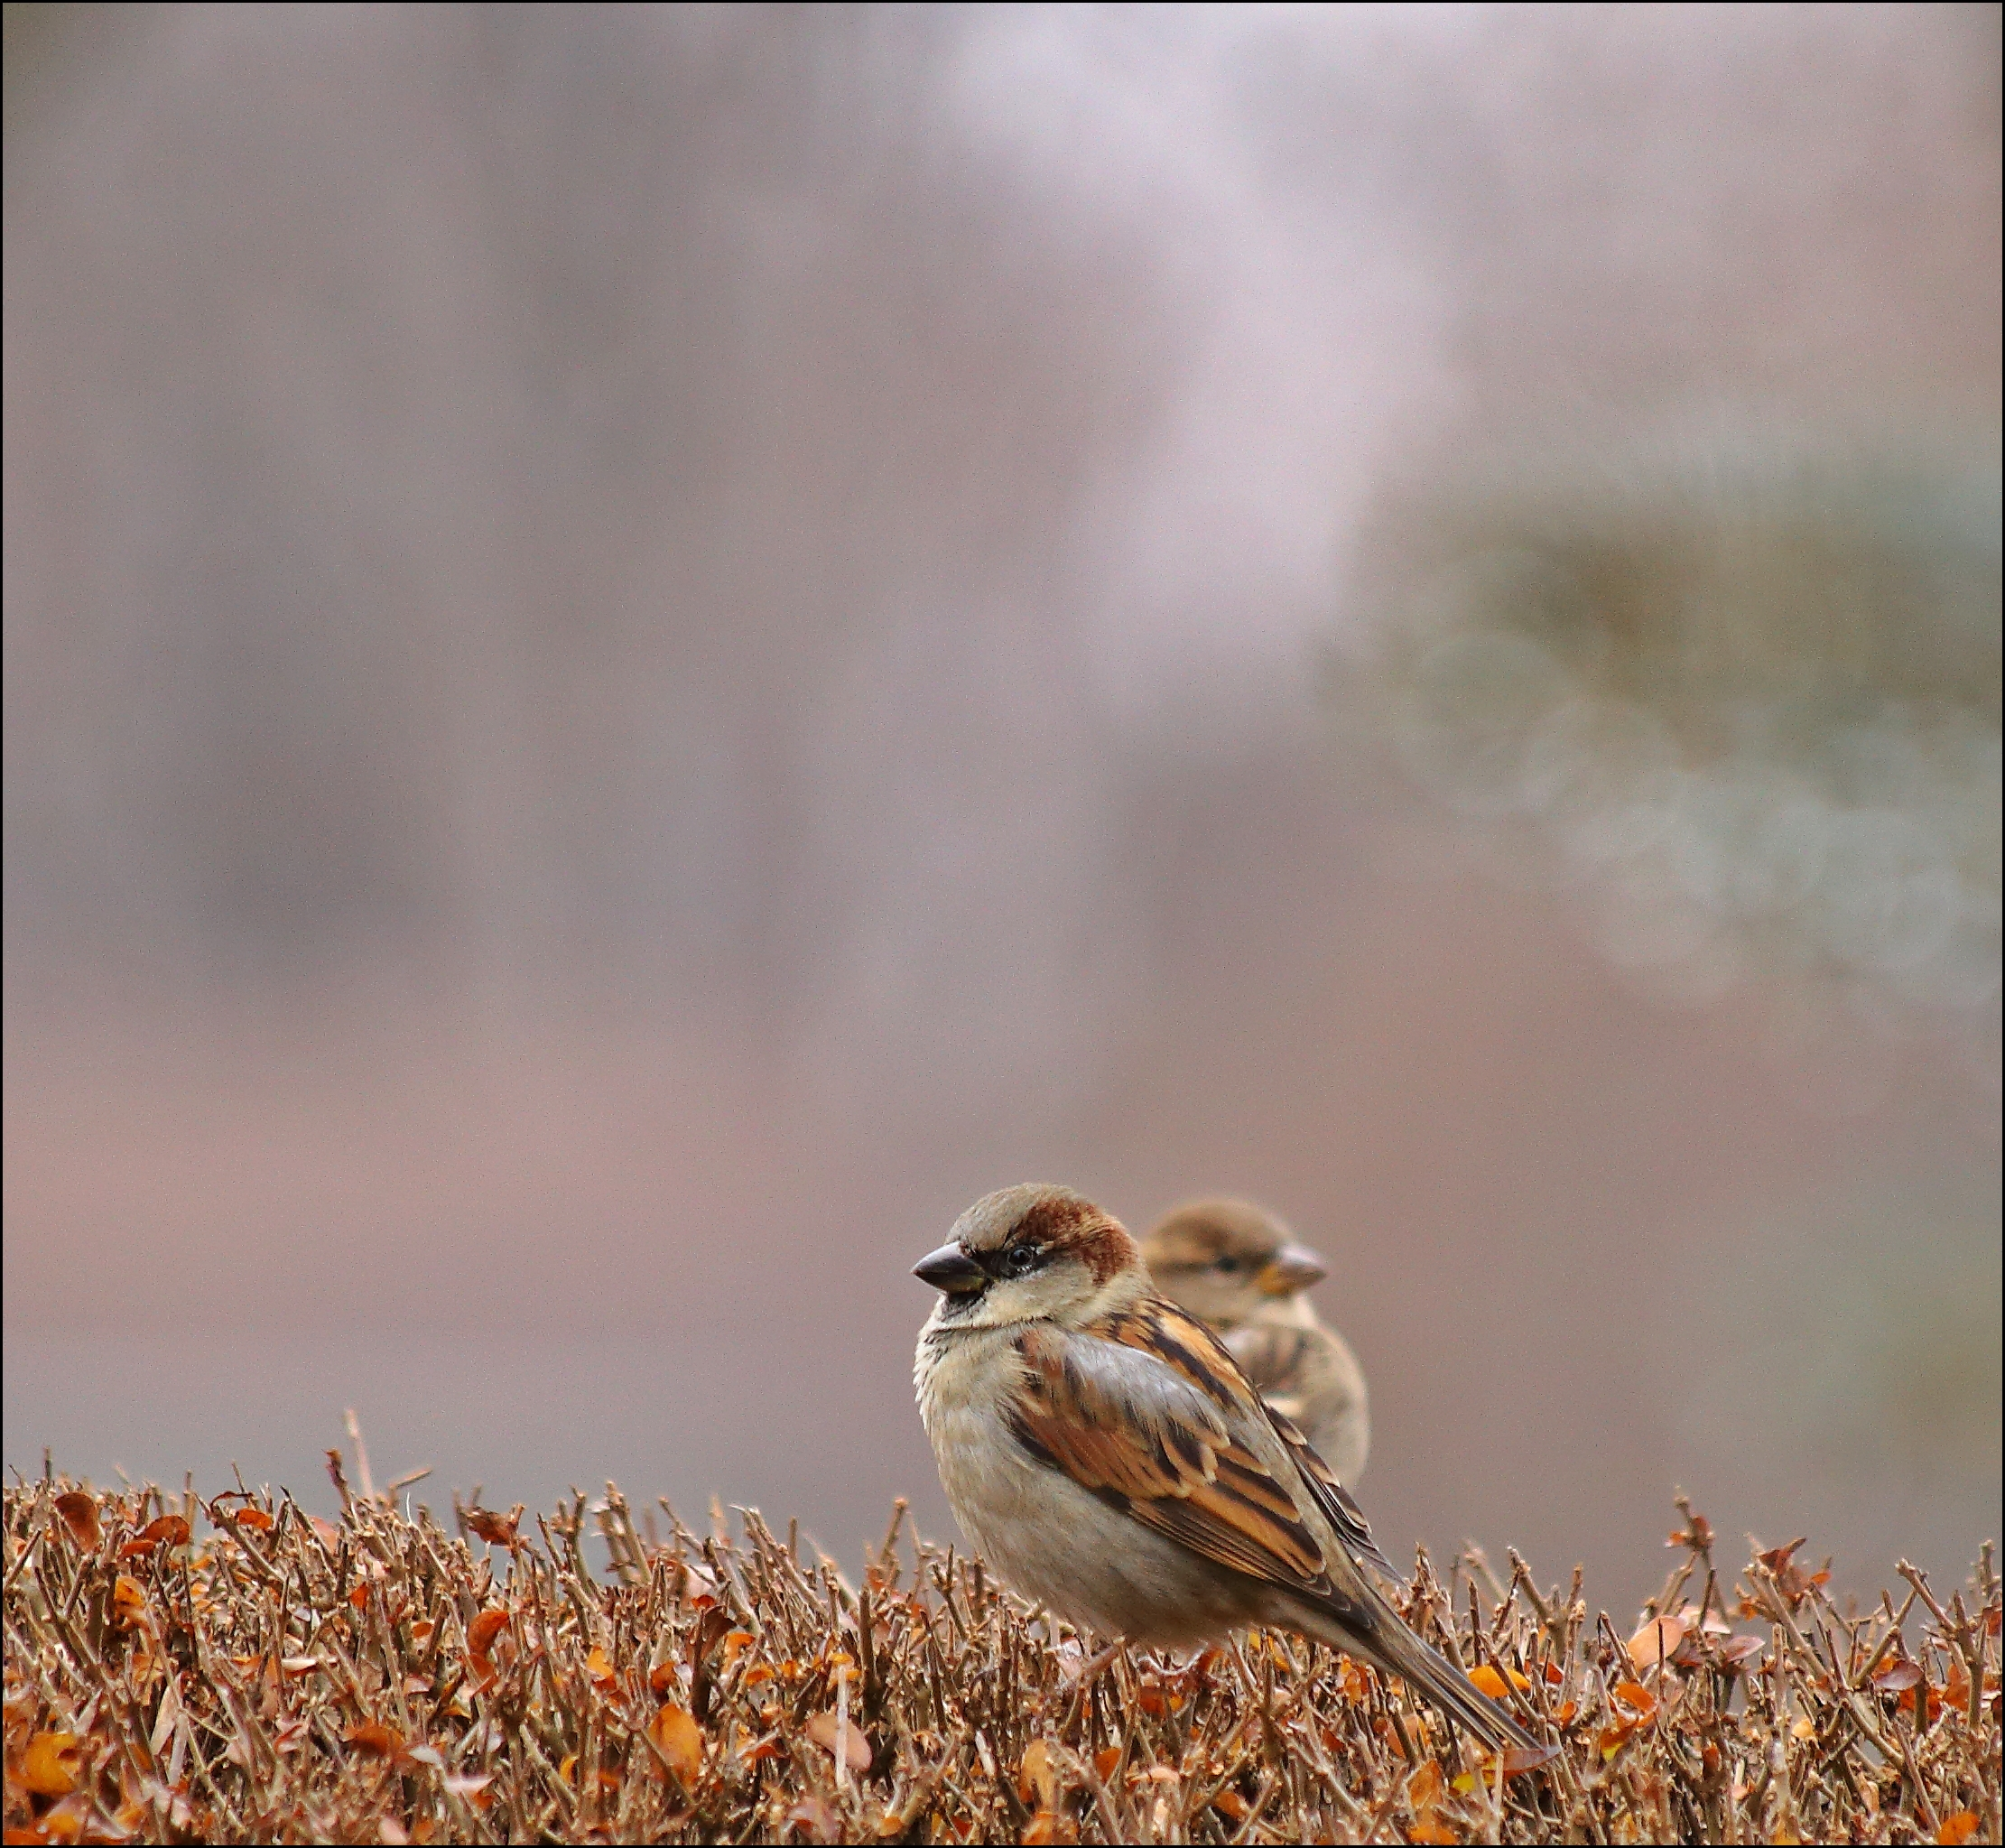 Full Zoom In Very Low Light. light, birds, canon, day, low, dreary, sparrow, dull, 6d. buy photo